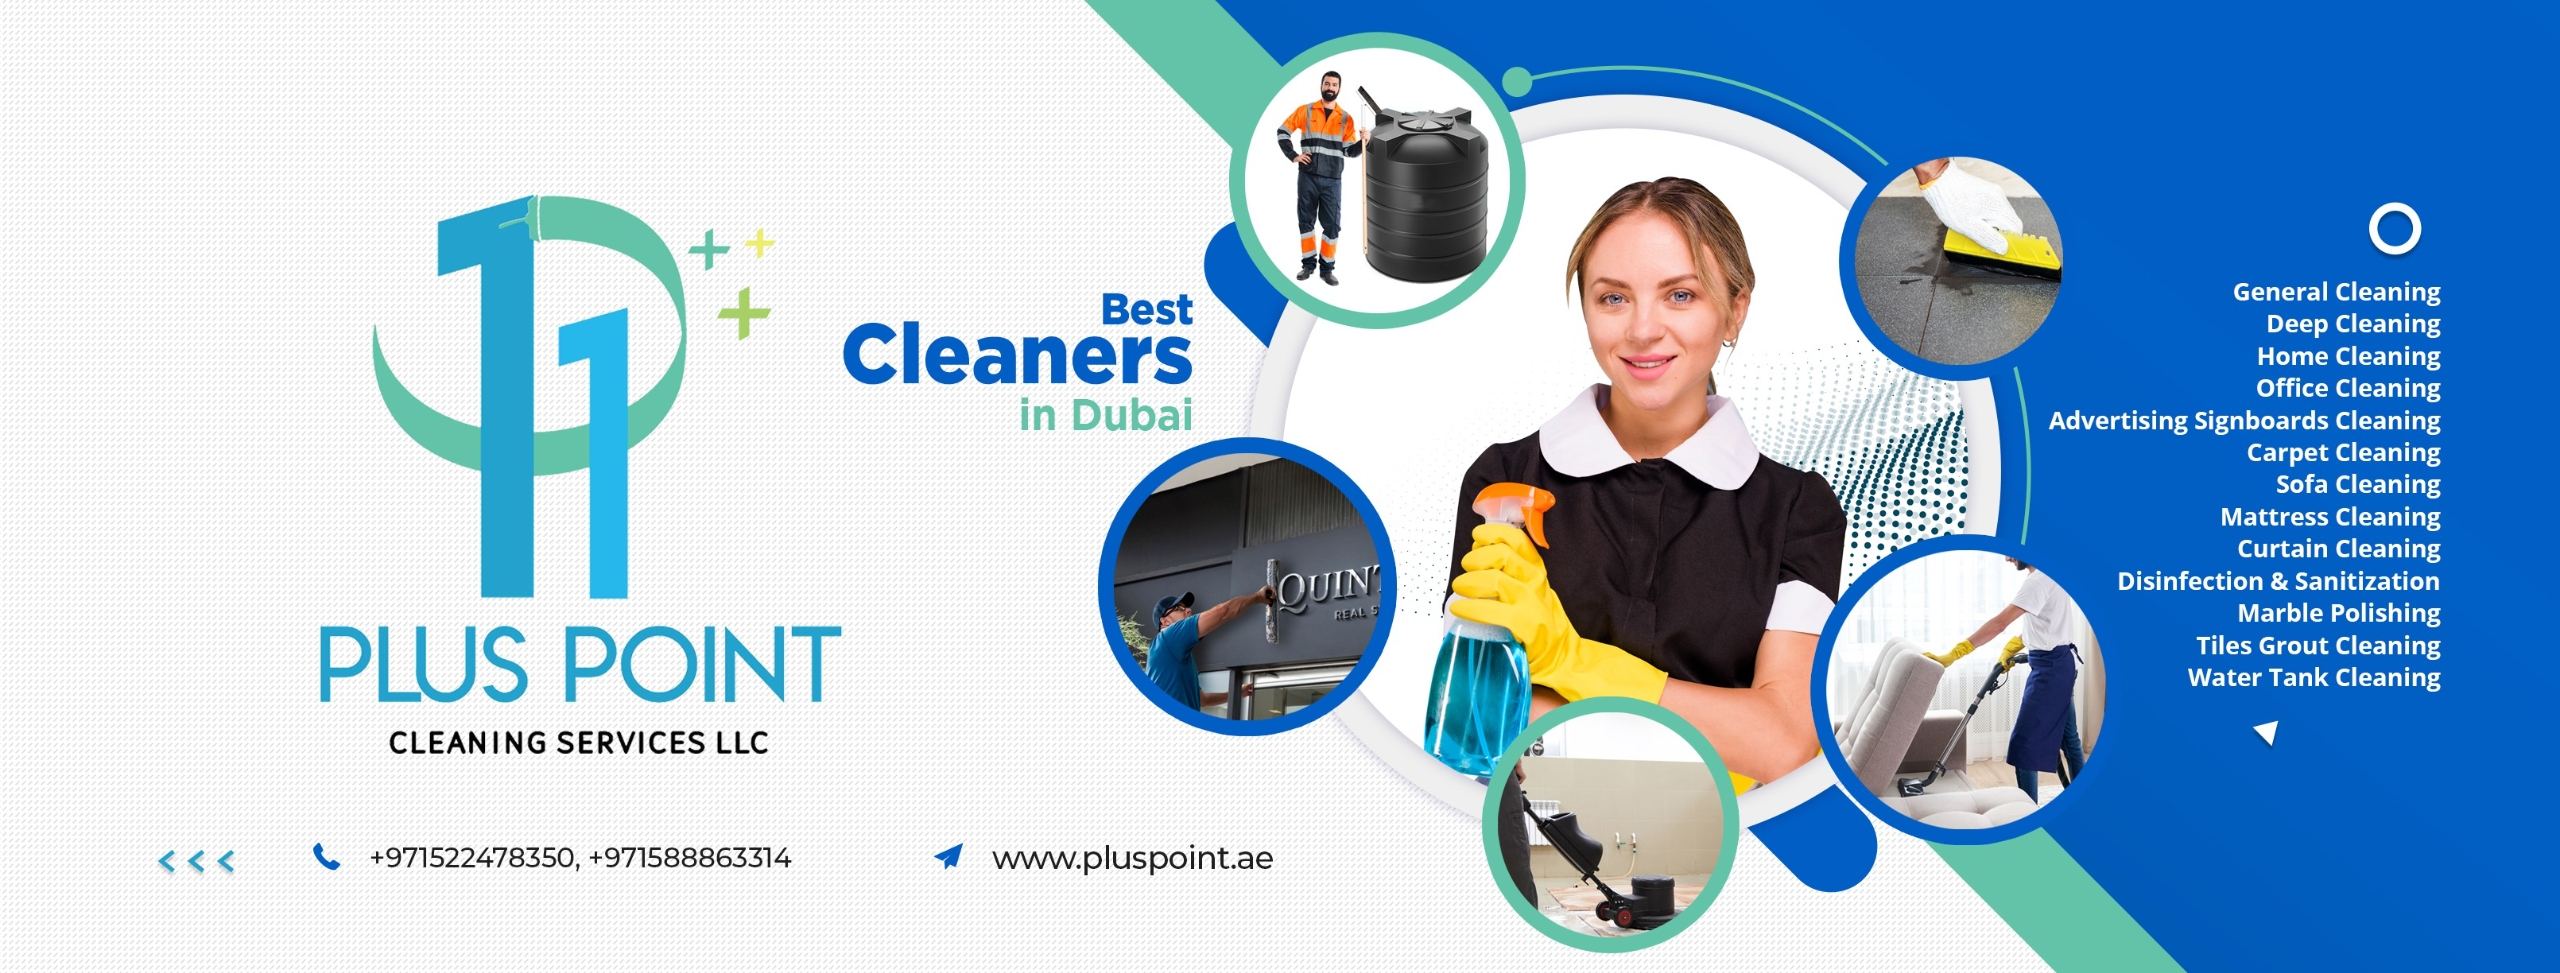 Pluspoint Cleaning Services  (@pluspointae) Cover Image